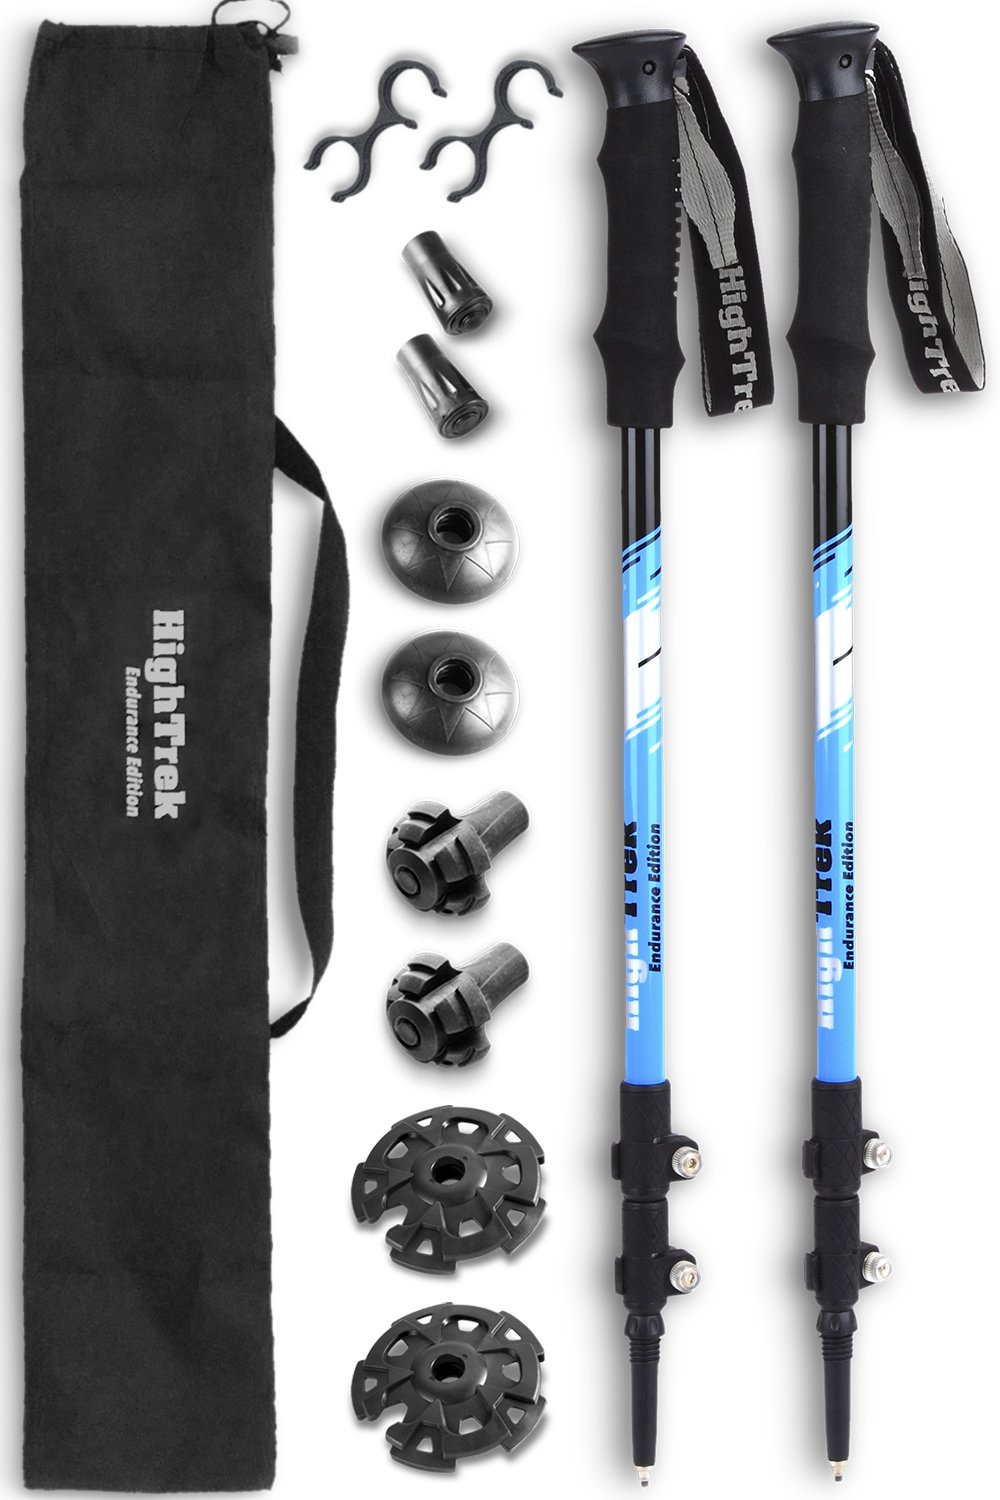 High Trek Ultralight Trekking Poles w/Sweat Absorbing EVA Grips - 2 pc Pack - Your Collapsible Hiking/Walking Sticks Come with Tungsten Tips and Flip Locks - Enjoy The Outdoors